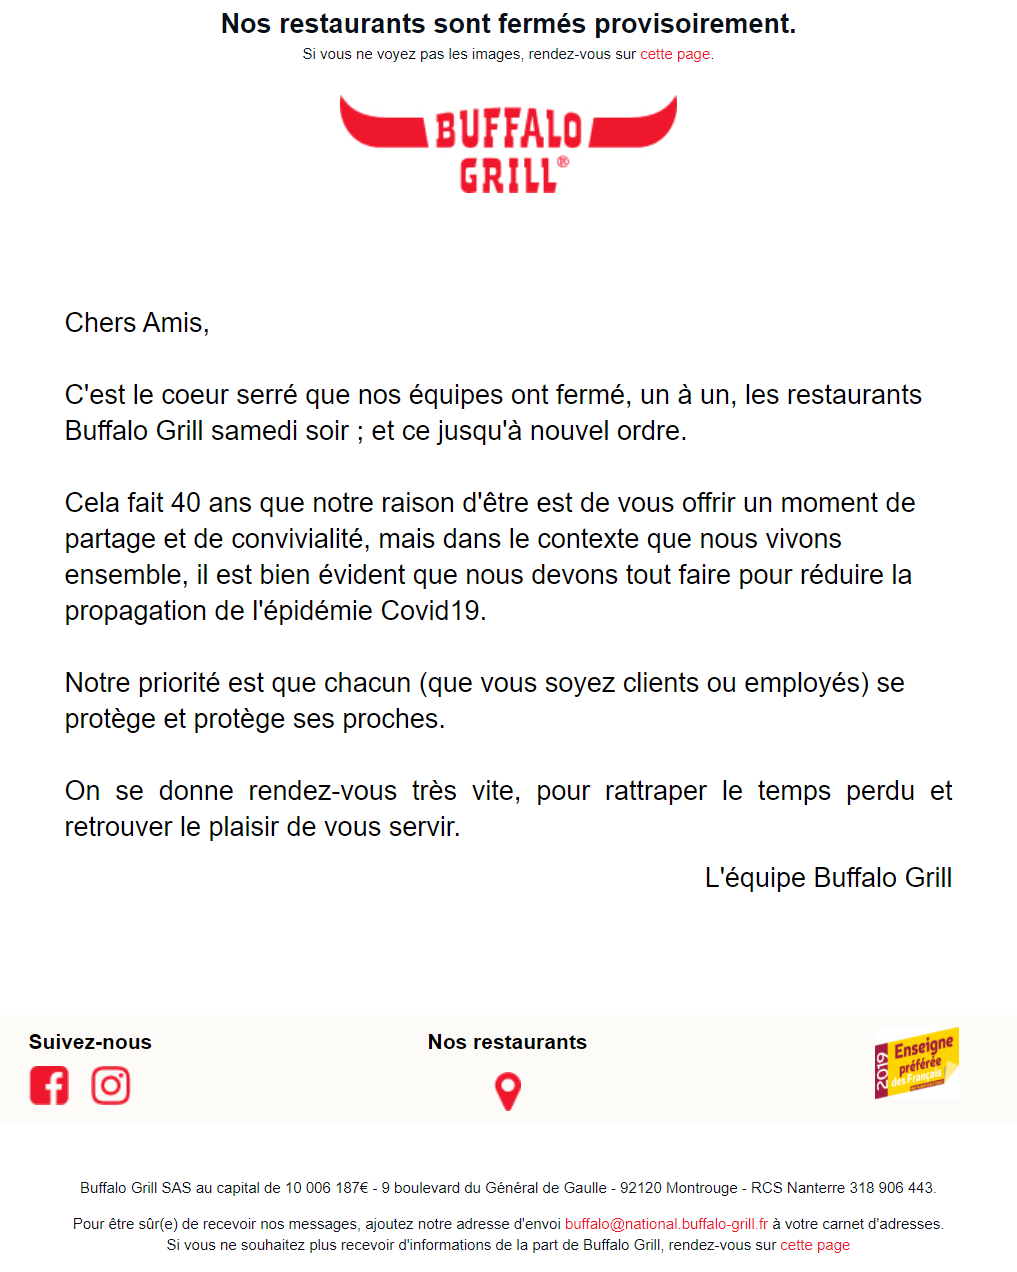 exemples emails coronavirus buffalo grill